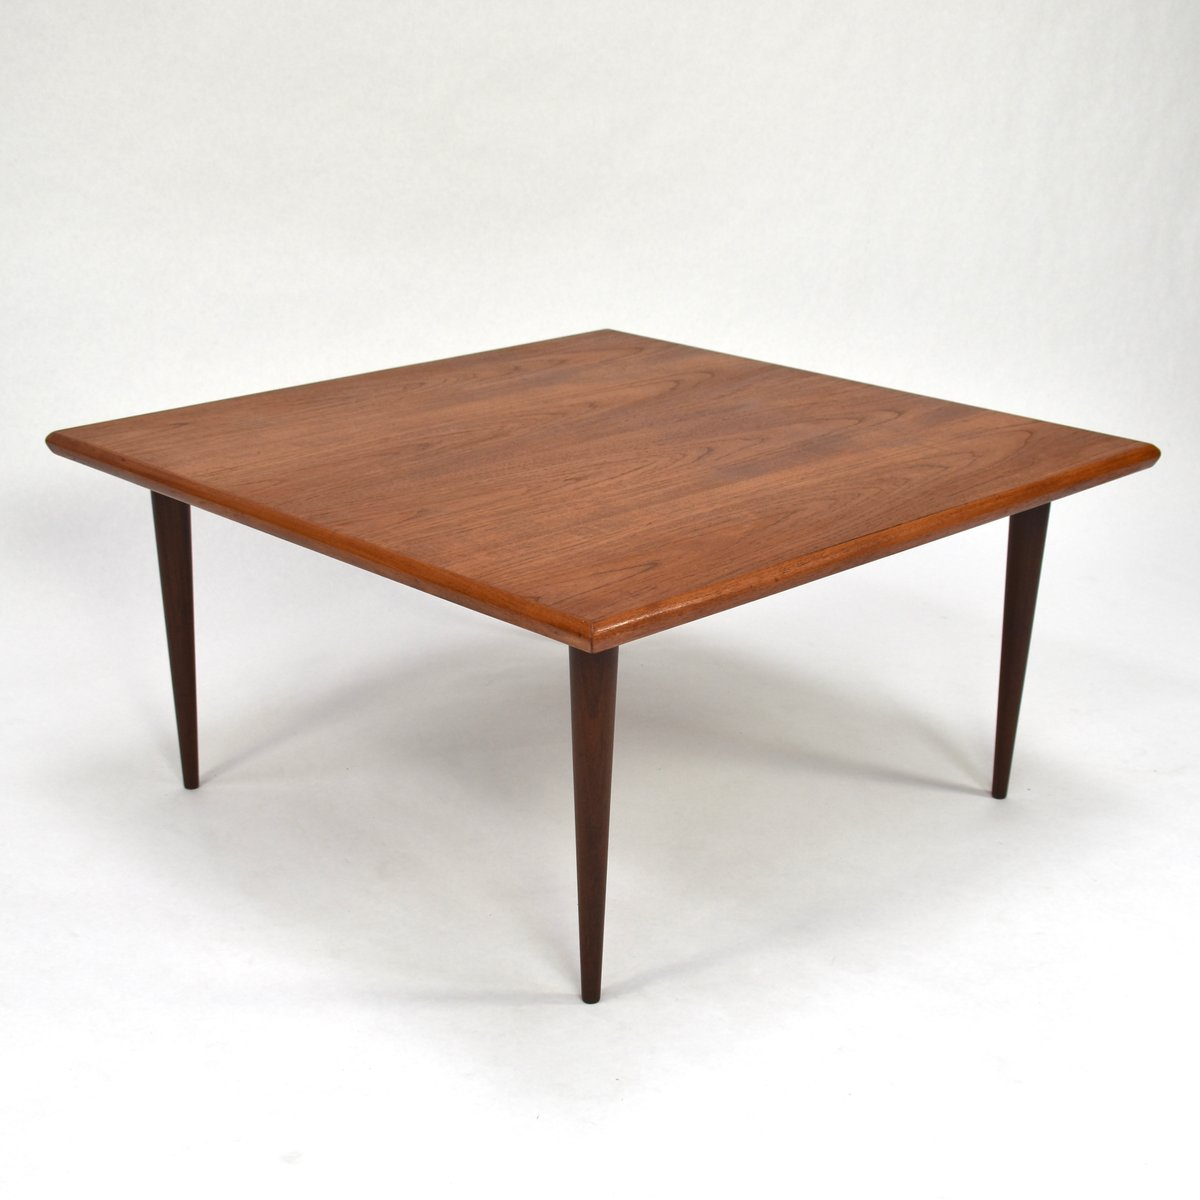 Scandinavian Teak Coffee Table: Danish Teak Coffee Table, 1950s For Sale At Pamono